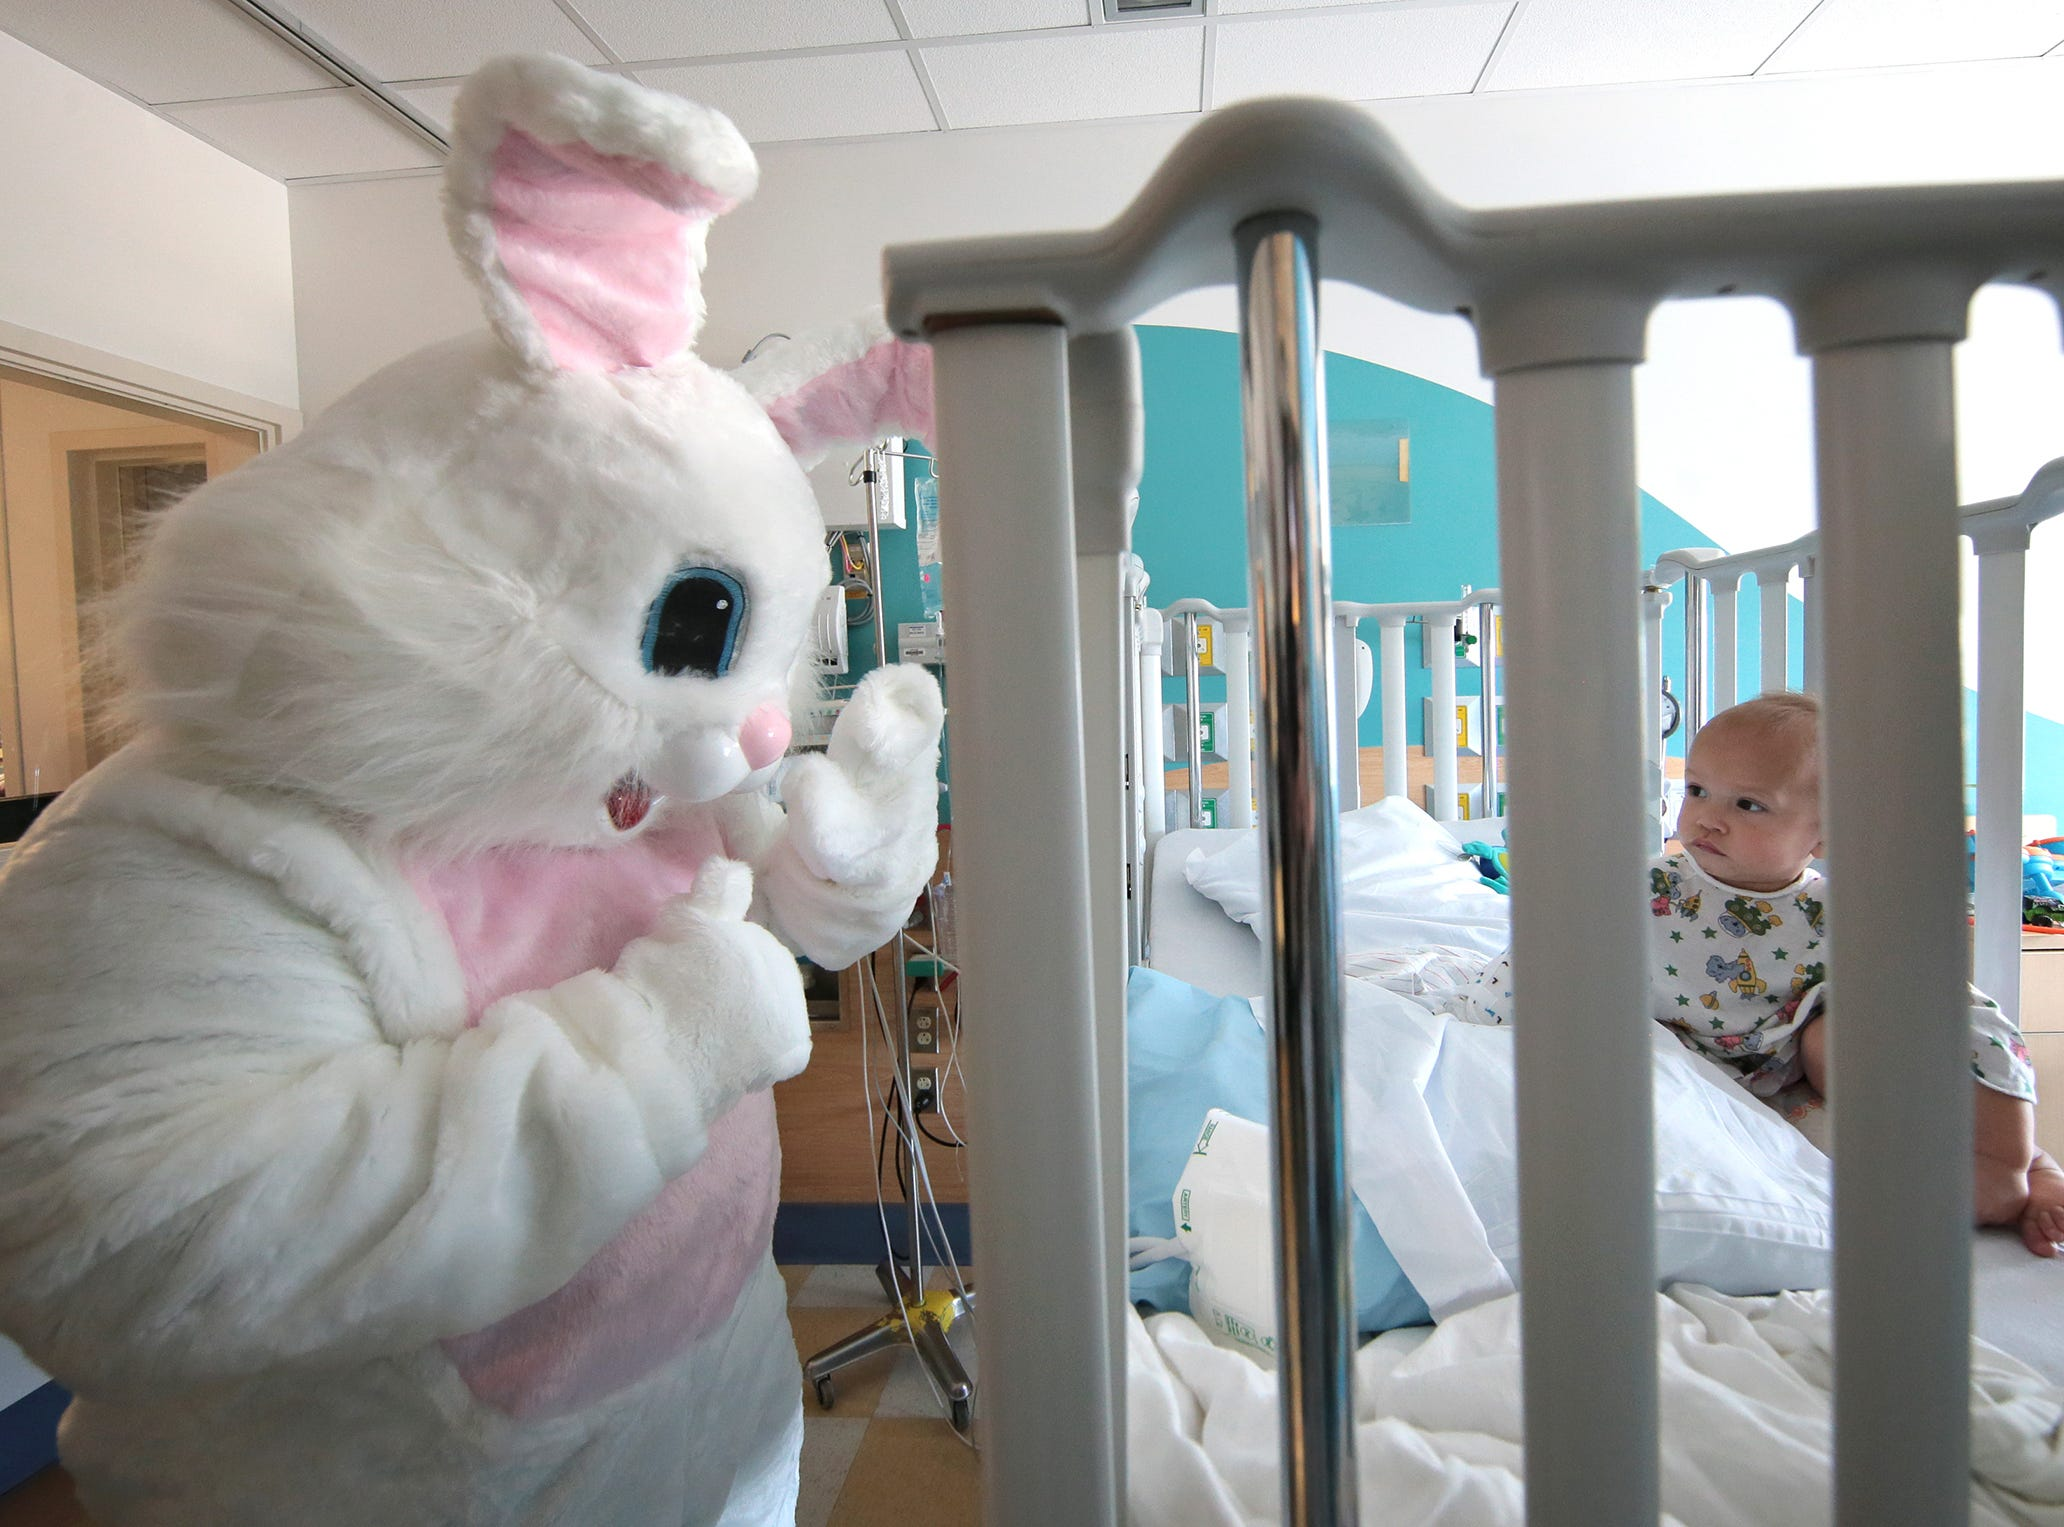 The Easter Bunny visits Liamsky Coonan, 1, in the ICU at El Paso Children's Hospital during a visit by the El Paso Sheriff's Office Thursday to deliver Easter baskets.